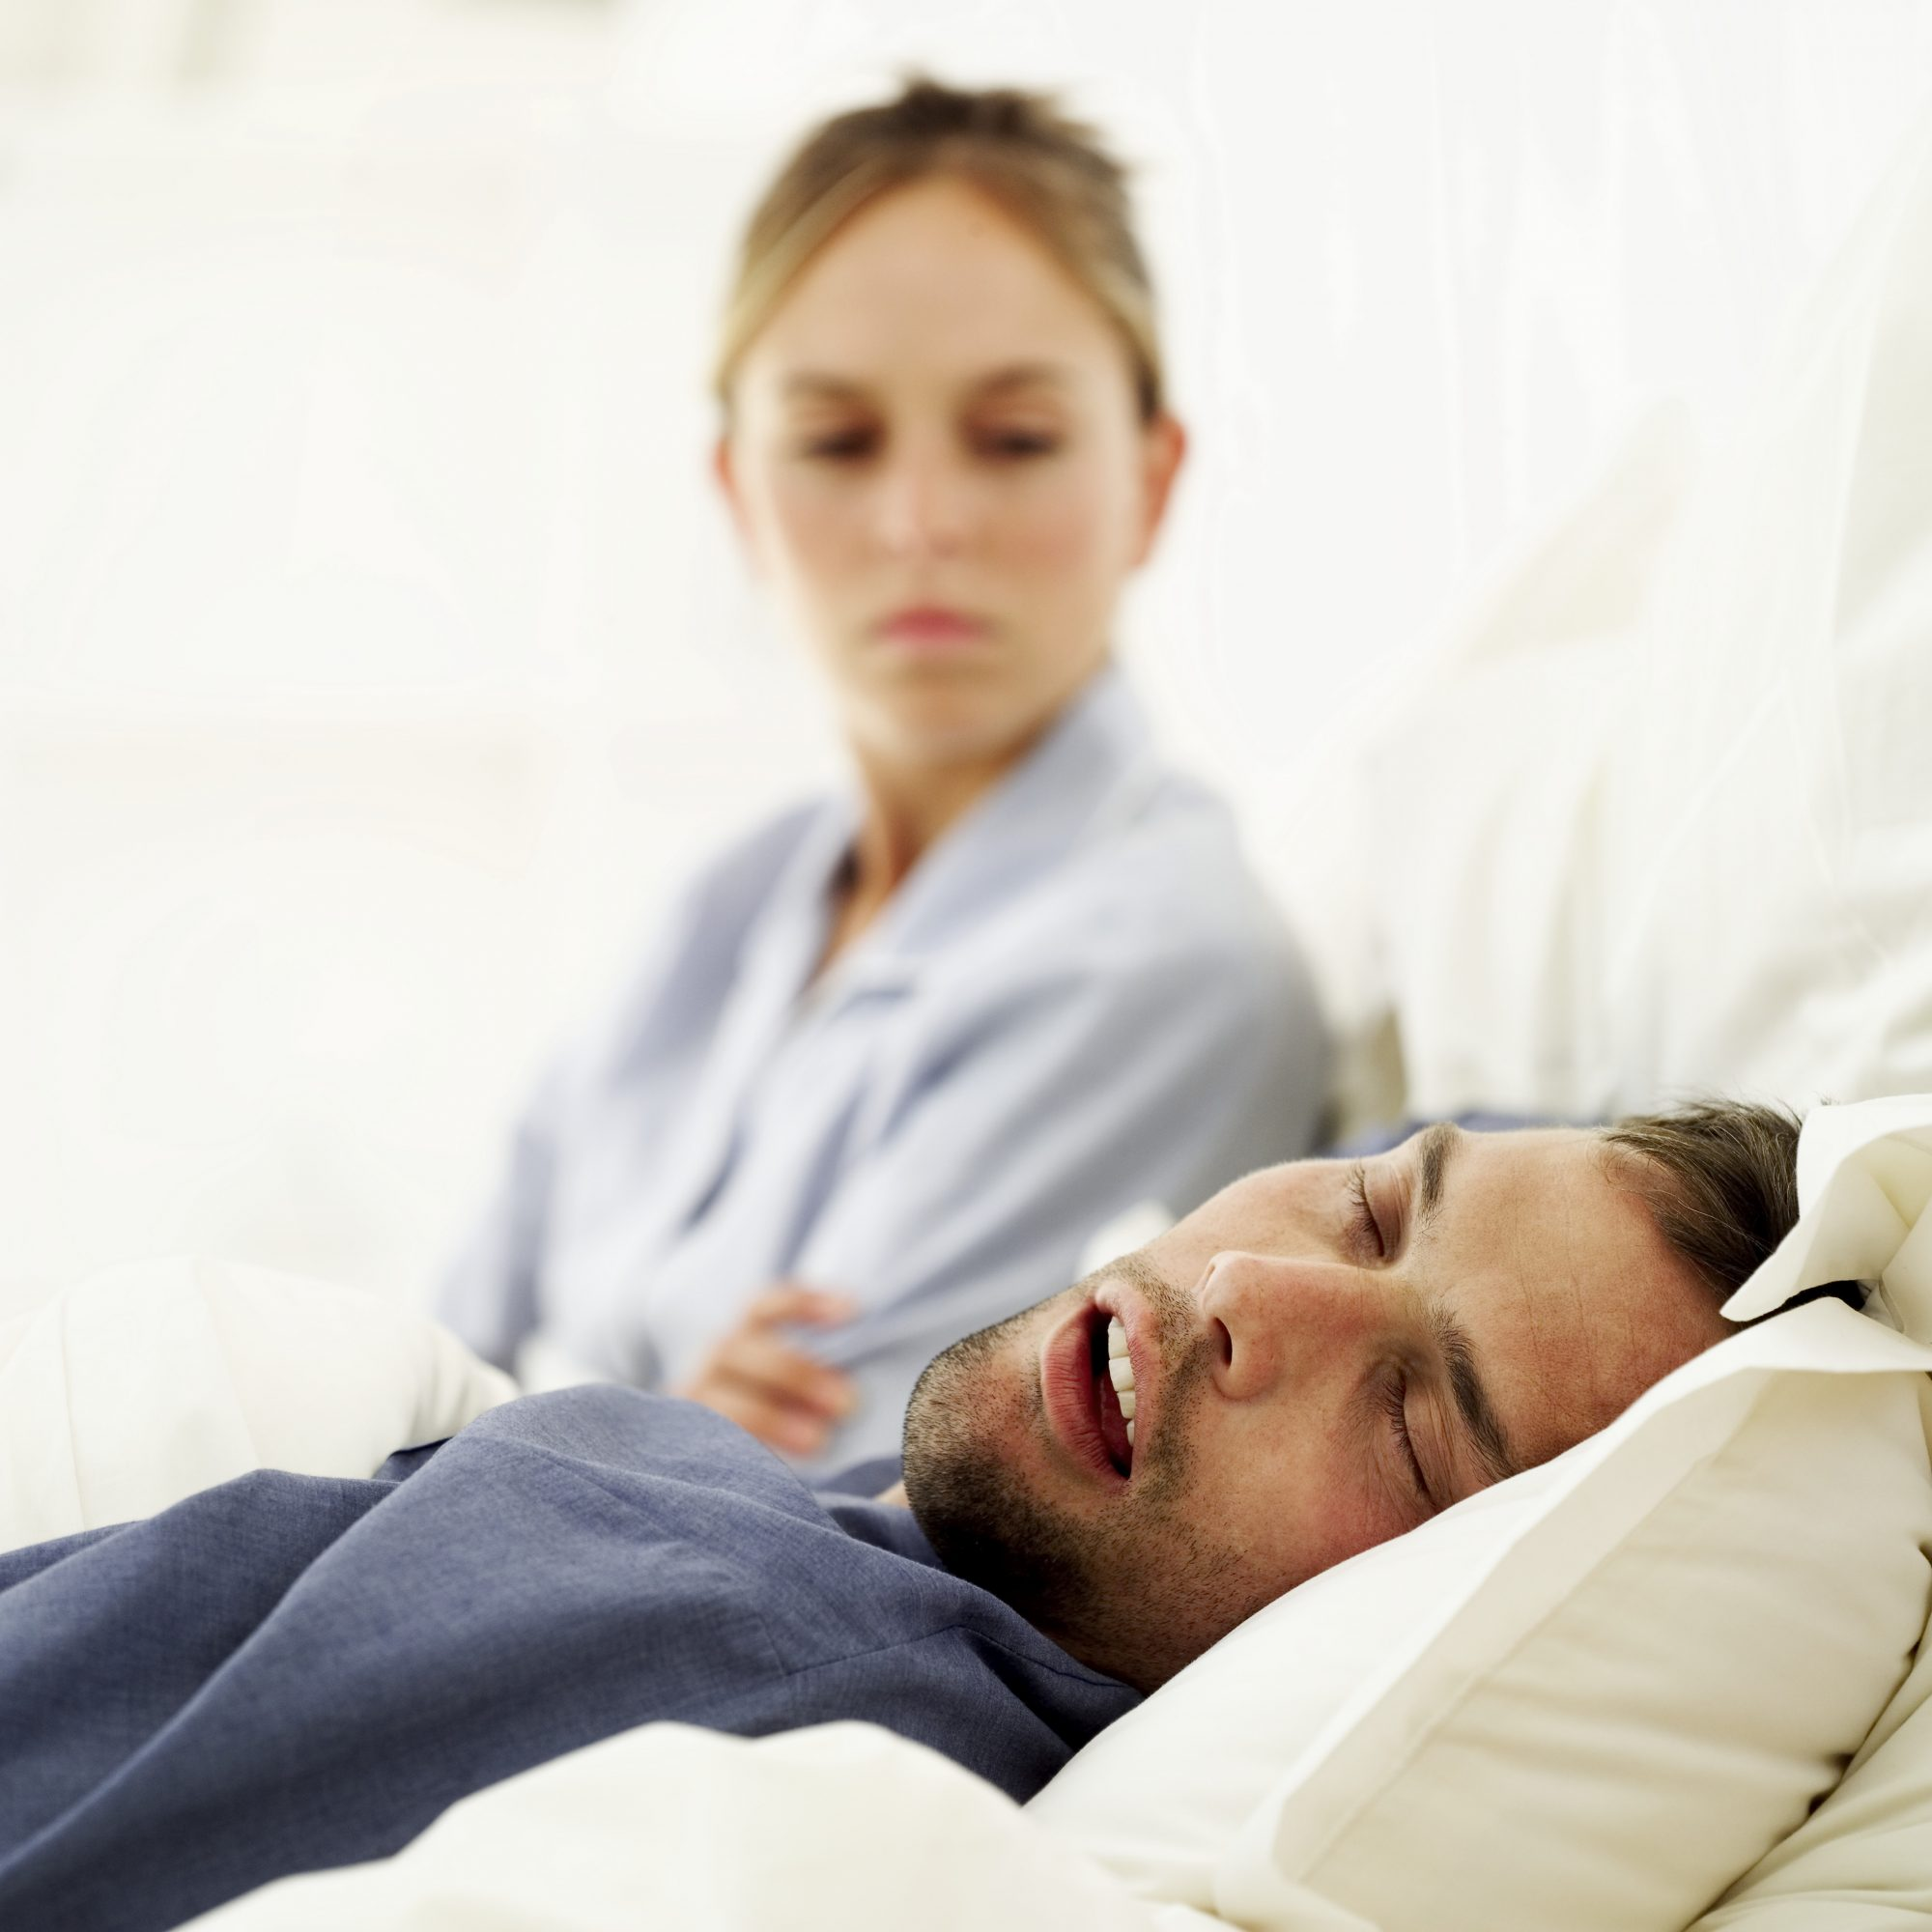 Your partner's snoring leaves you staring at the ceiling